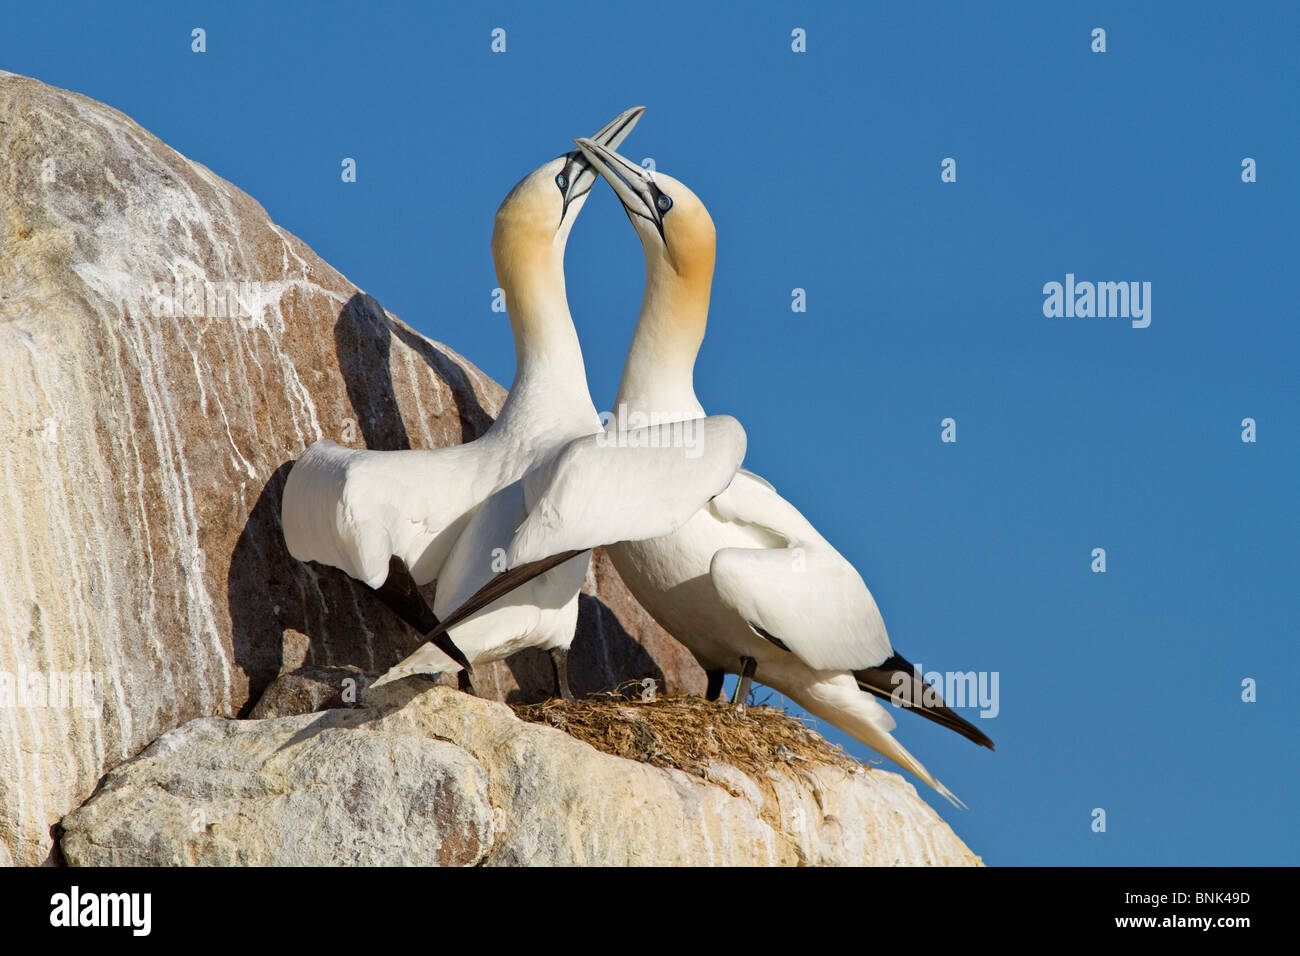 Gannets, courtship display ritual - Stock Image